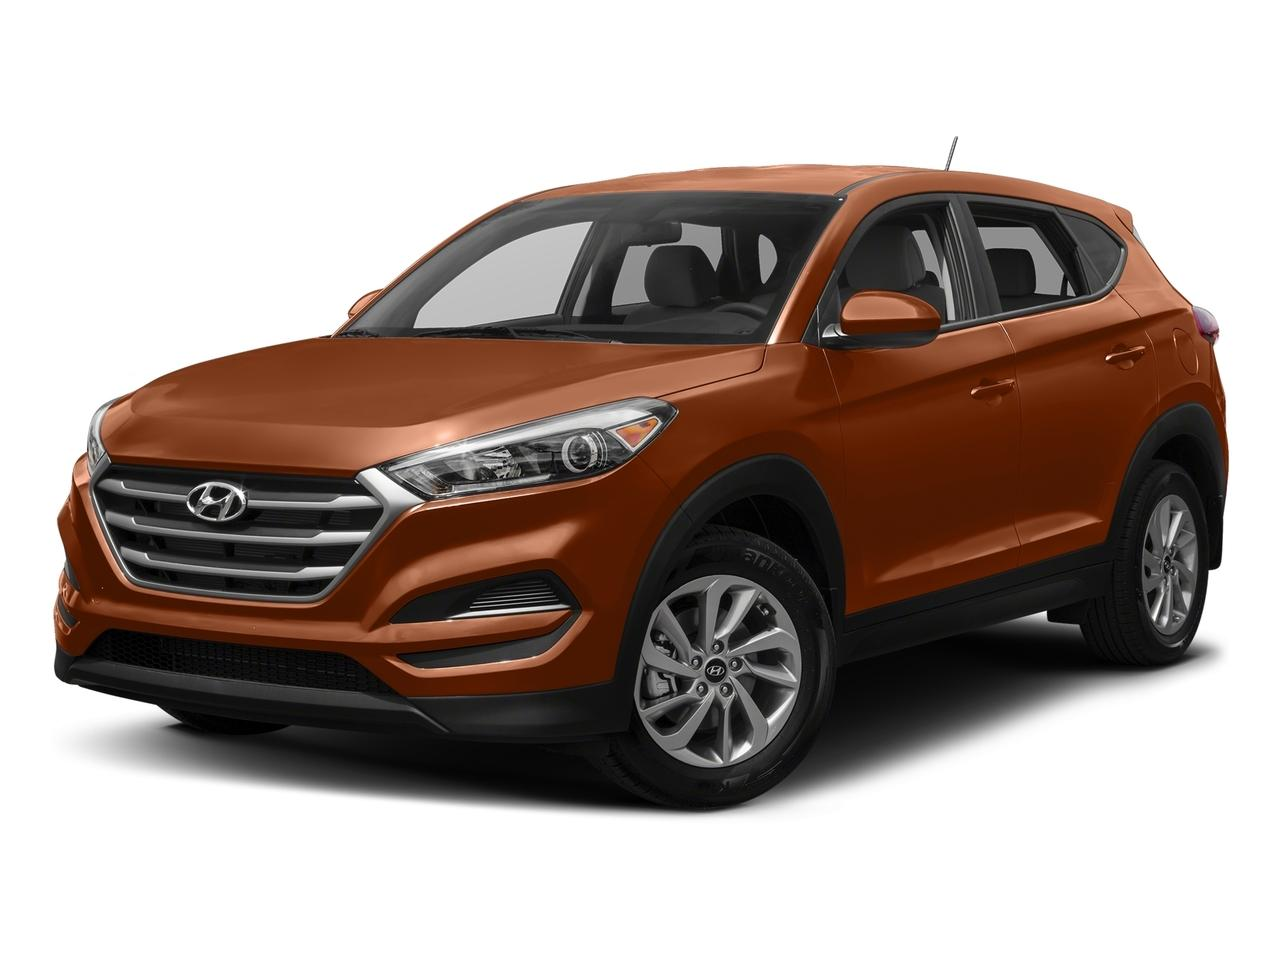 2017 Hyundai Tucson Vehicle Photo in Salem, VA 24153